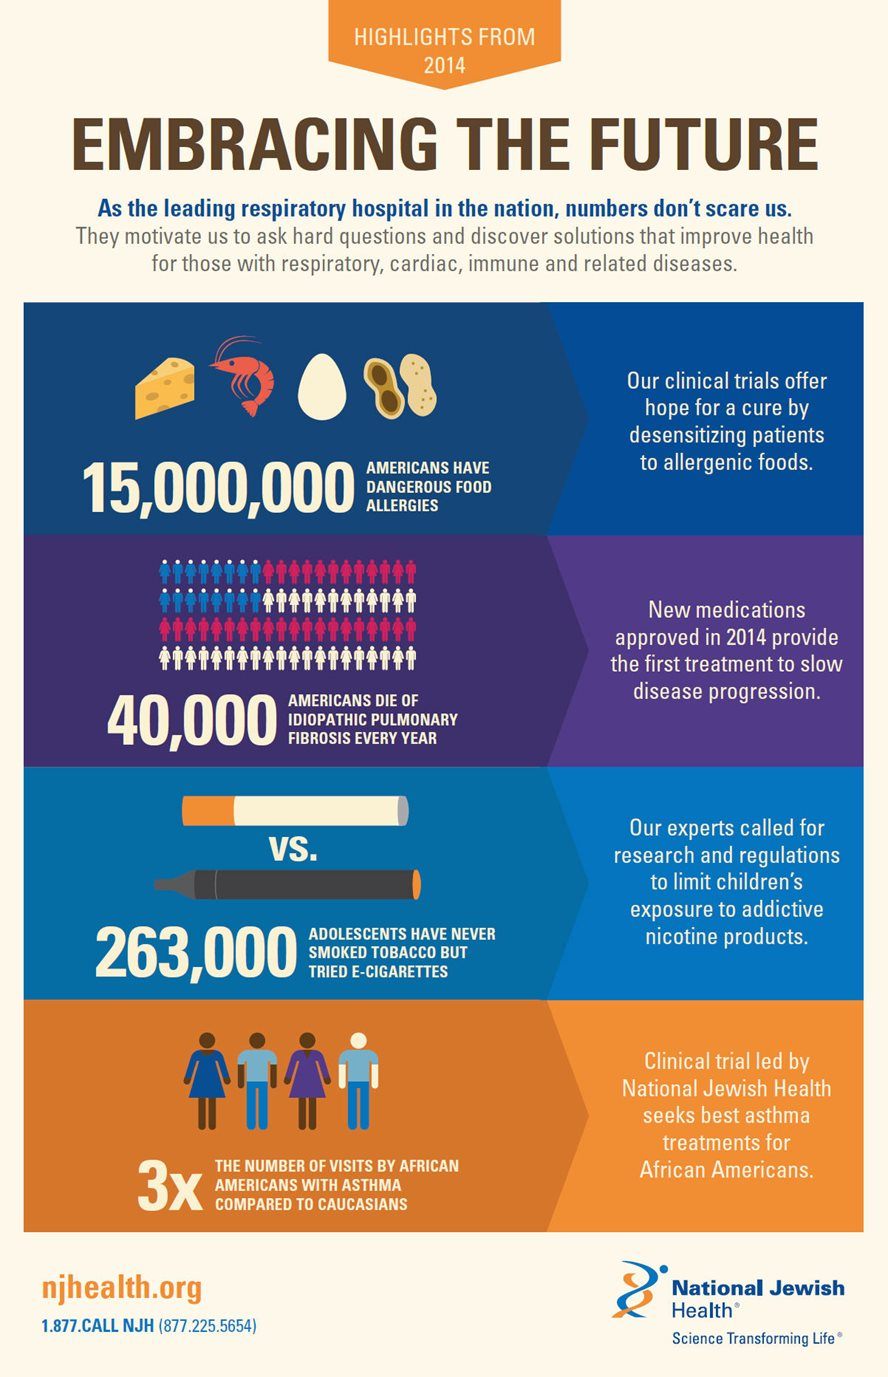 Highlights From 2014 at National Jewish Health: Embracing The Future Infographic